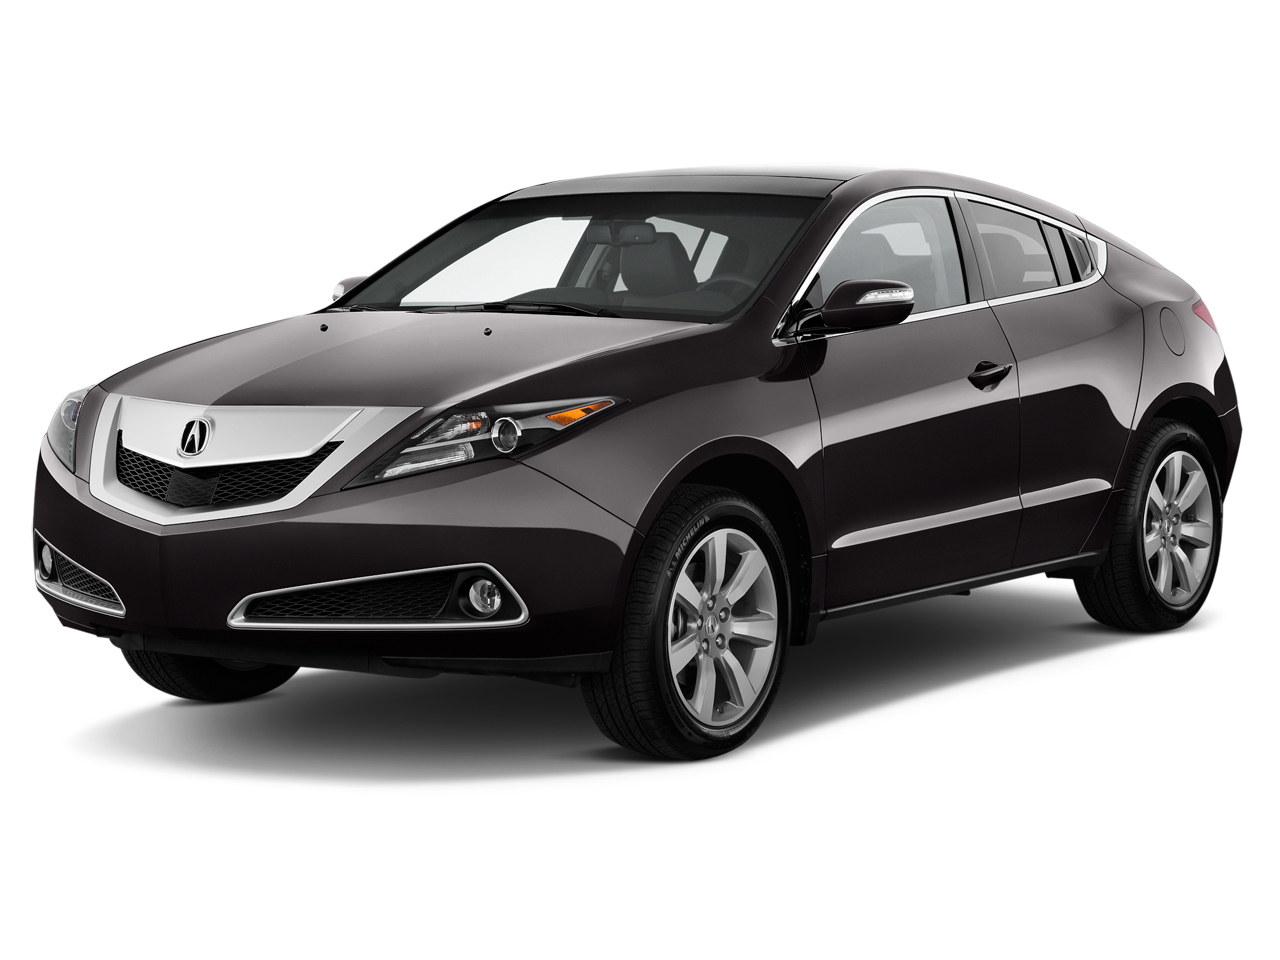 2012 acura zdx review ratings specs prices and photos the car